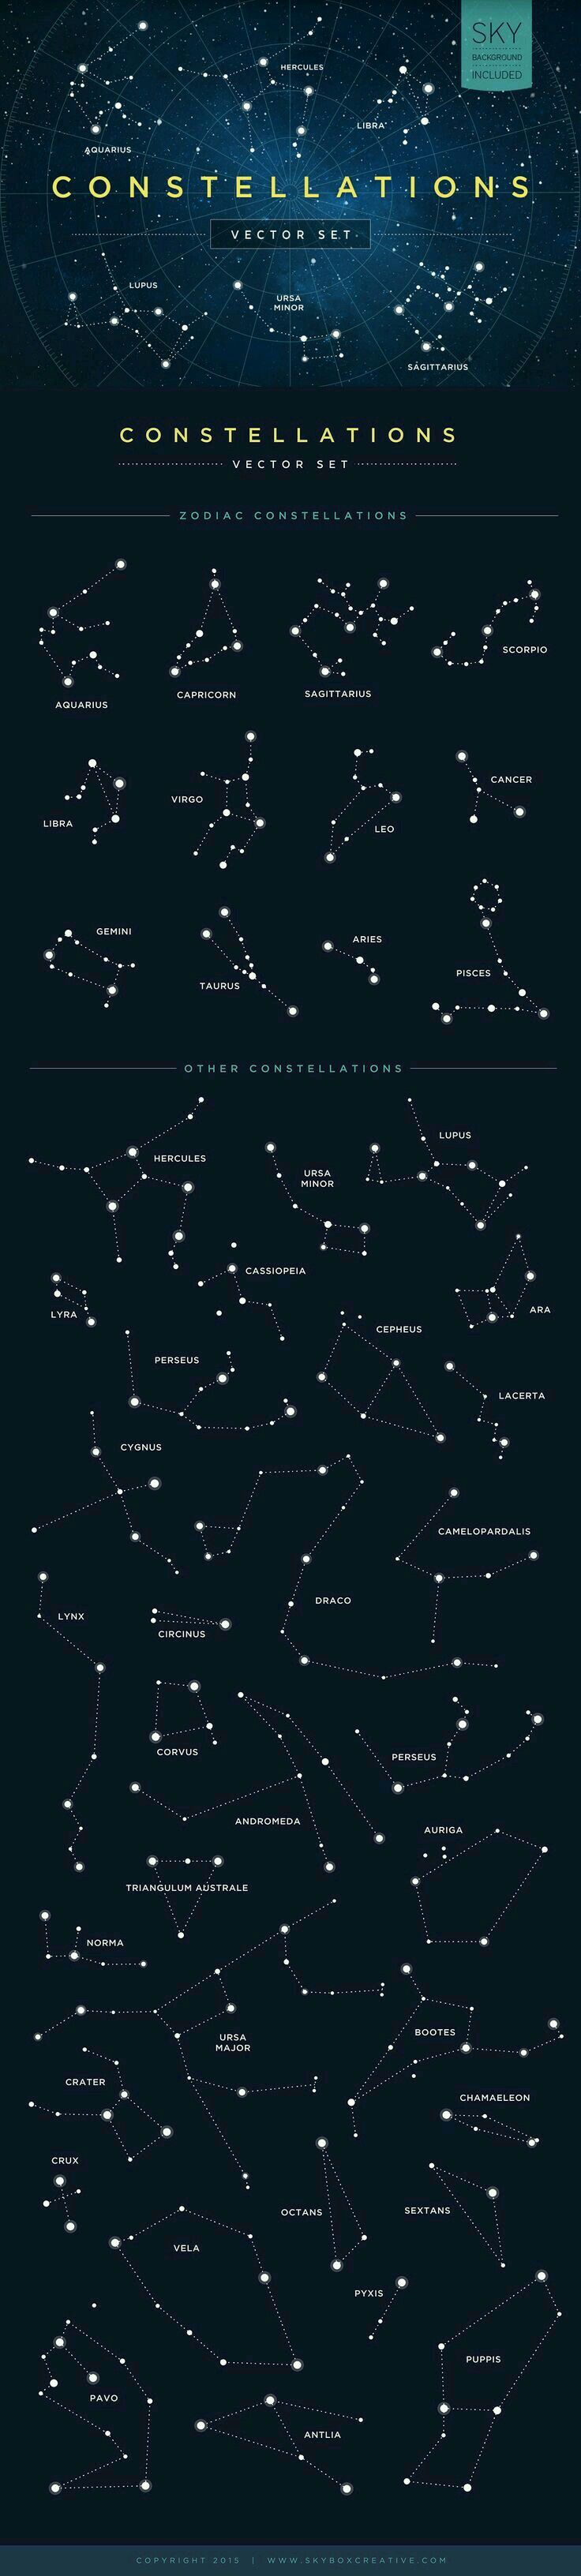 Constellation tattoo idea